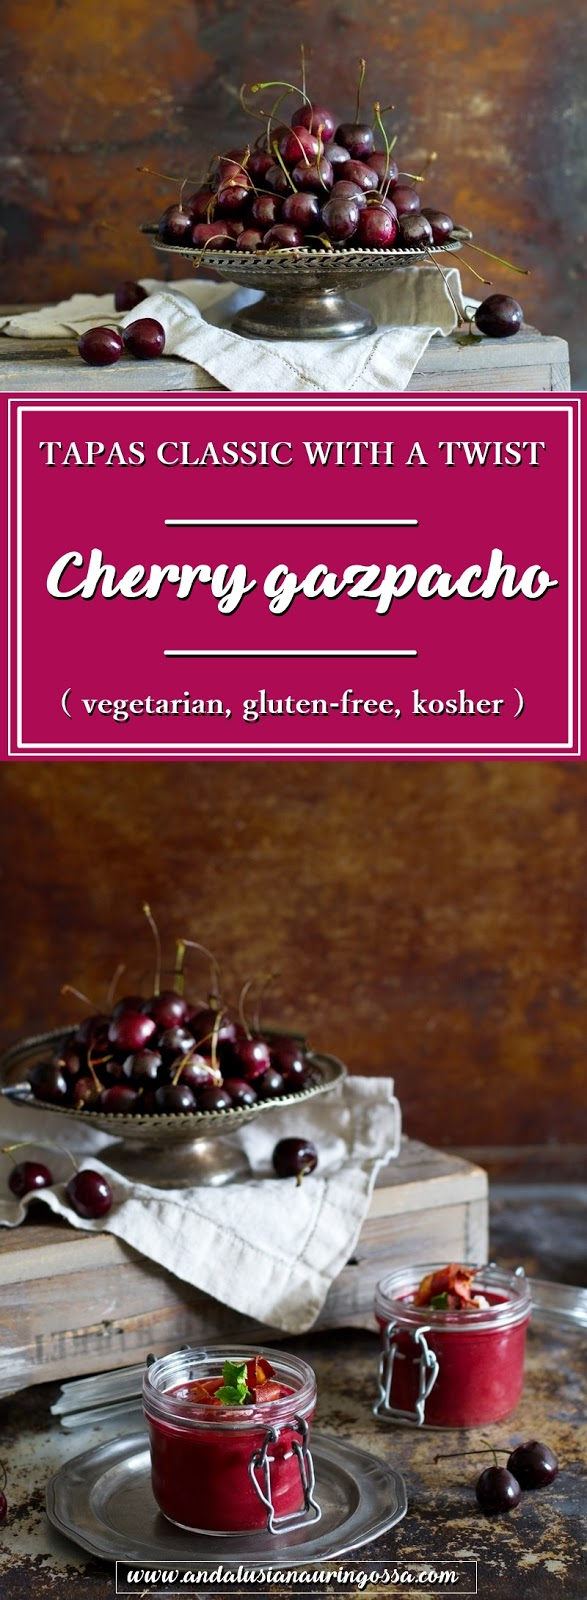 cherry gazpacho_tapas_vegetarian_gluten-free_kosher_Under the Andalusian Sun_food blog_PIN ME